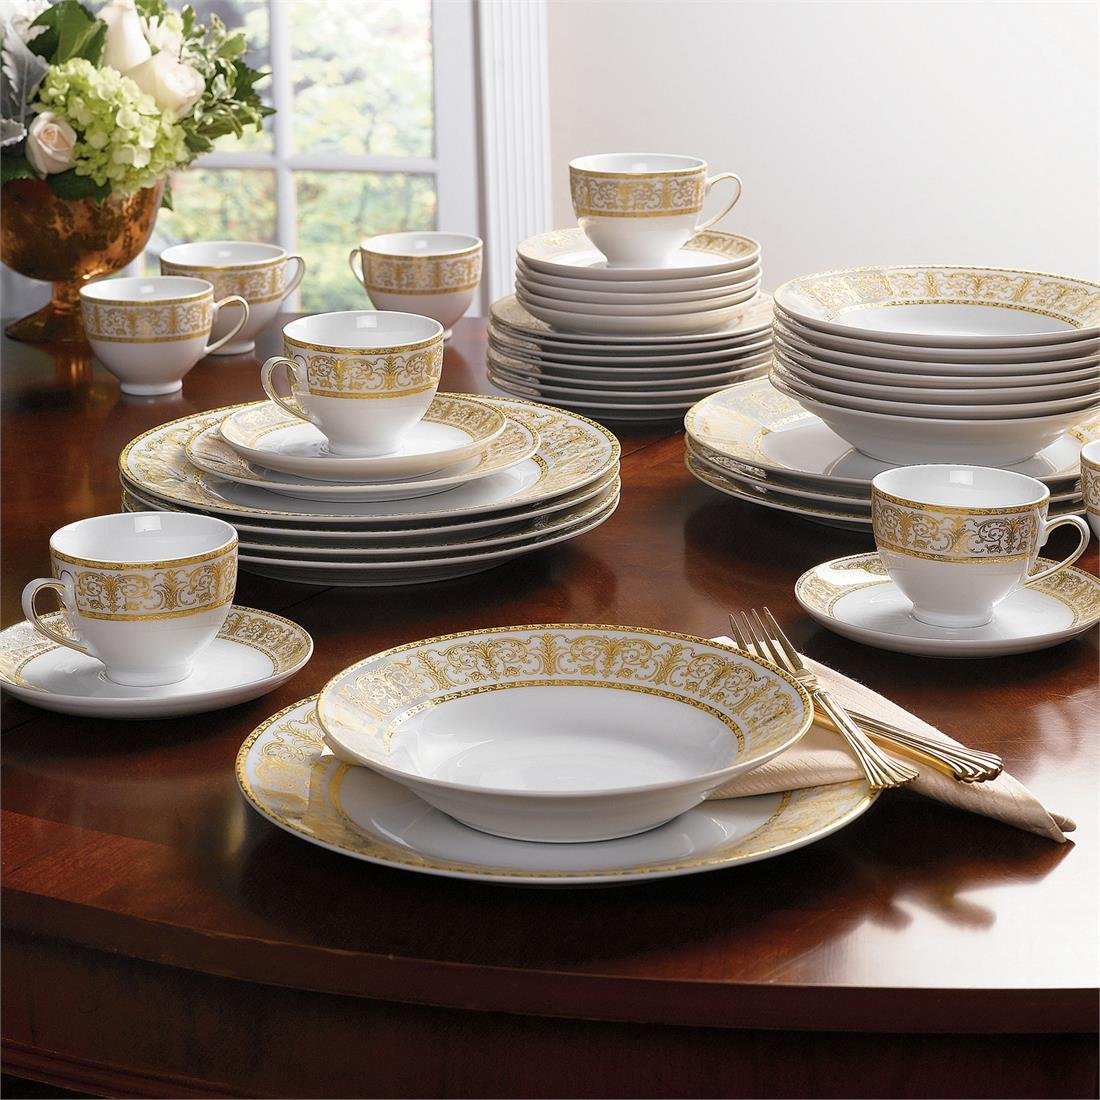 2015 Holiday Gift Guide. Dress Up Your Table with BrylaneHome 40-Pc. Golden Ceramic Dinnerware Set !